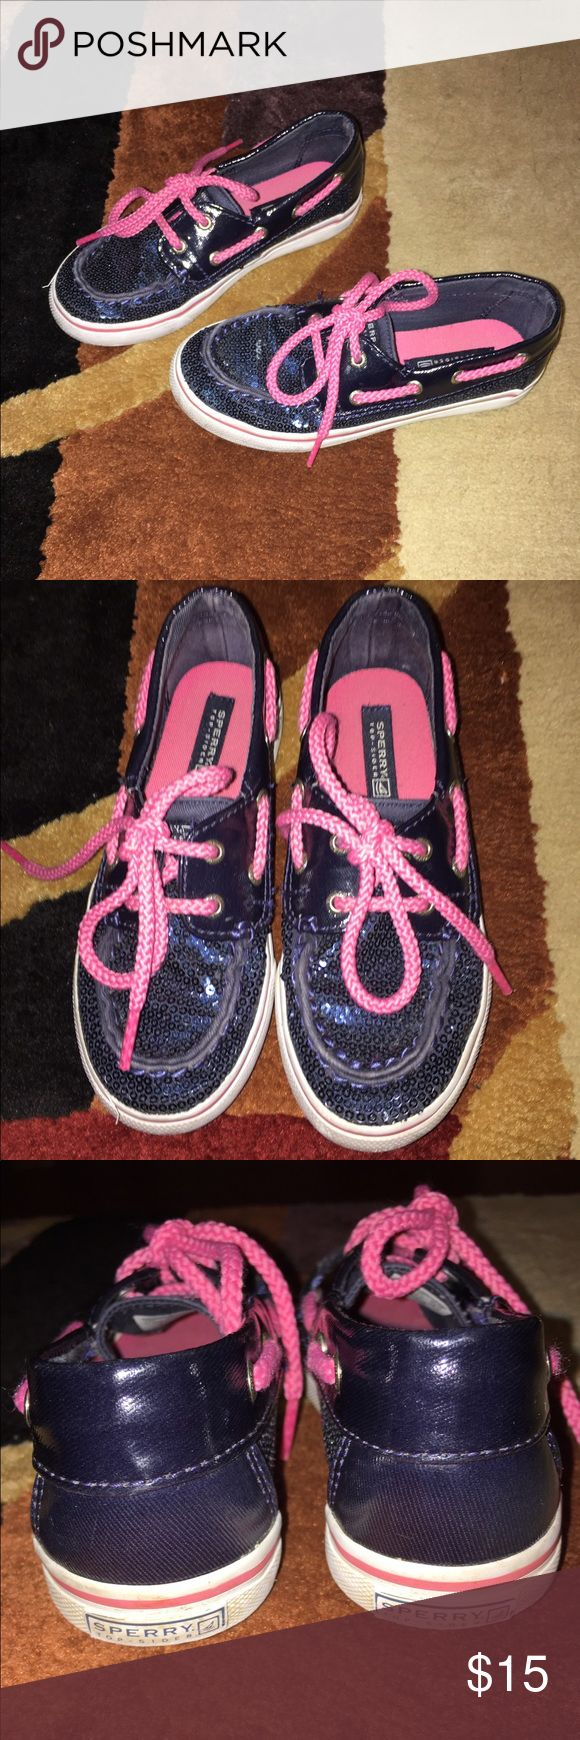 PRICE DROP $13 GIRLS SPERRY TOP SIDER SHOES SPERRY TOP SIDER NAVY SEQUIN WITH PINK LAVES BOAT SHOES EXCELLENT CONDITION SIZE 11M Sperry Top-Sider Shoes